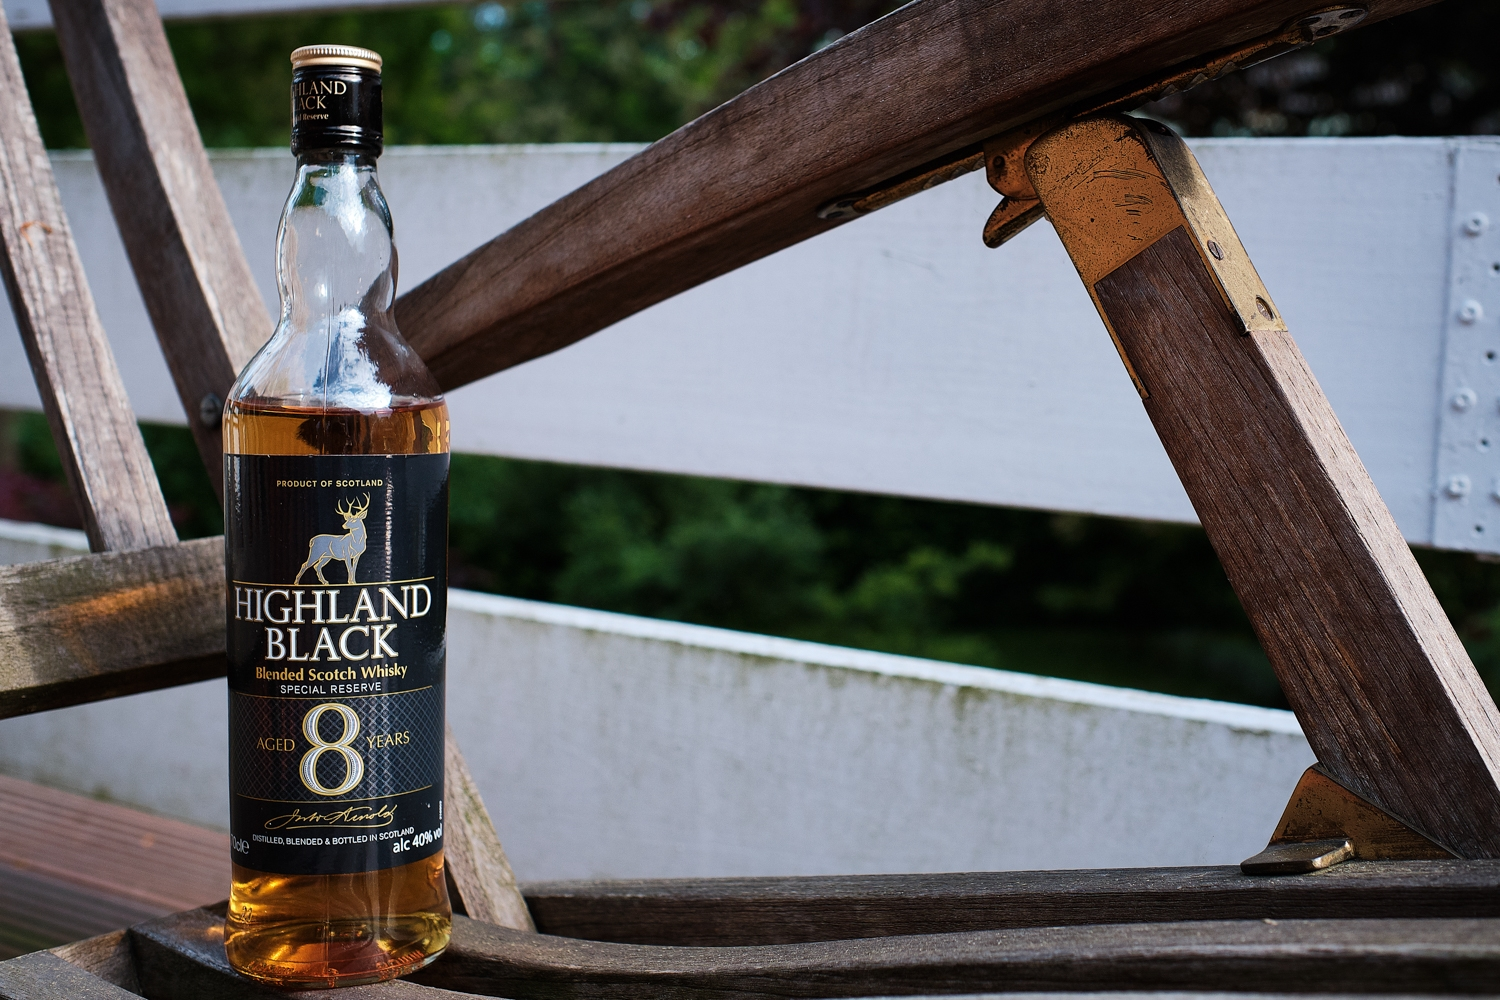 You are currently viewing Highland Black Blended Scotch Whisky 8 years old   Aldi Süd